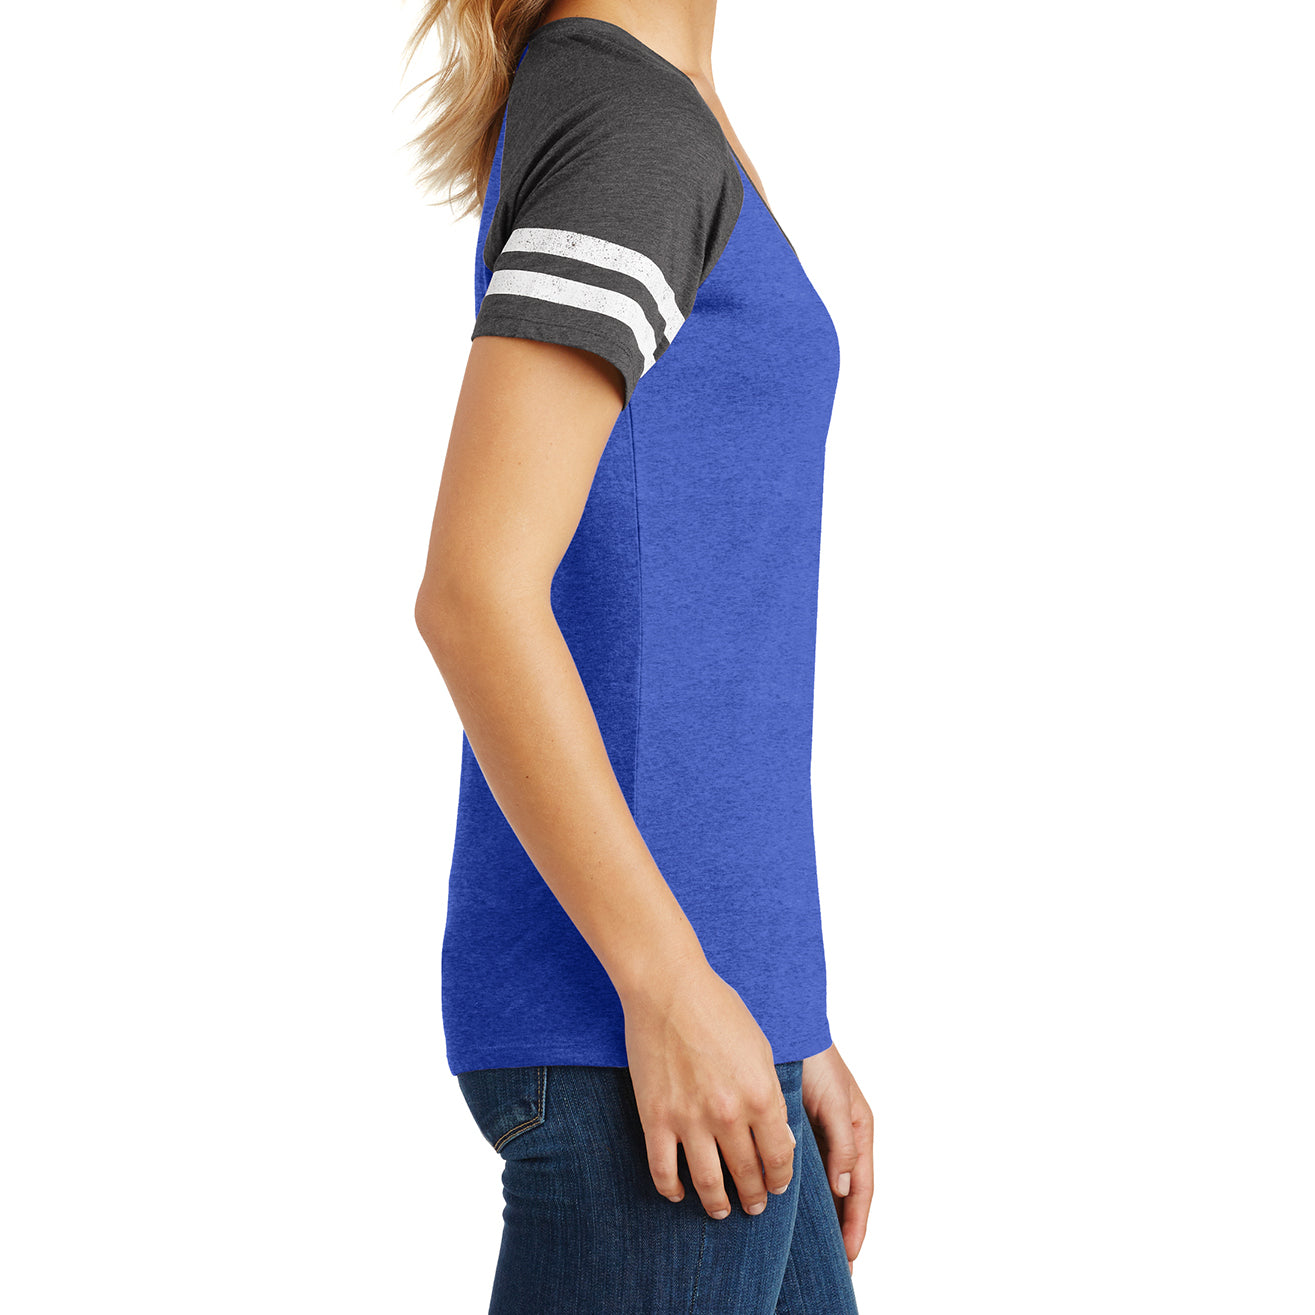 Womens Game V-Neck Tee - Heathered True Royal/Heathered Charcoal - Side